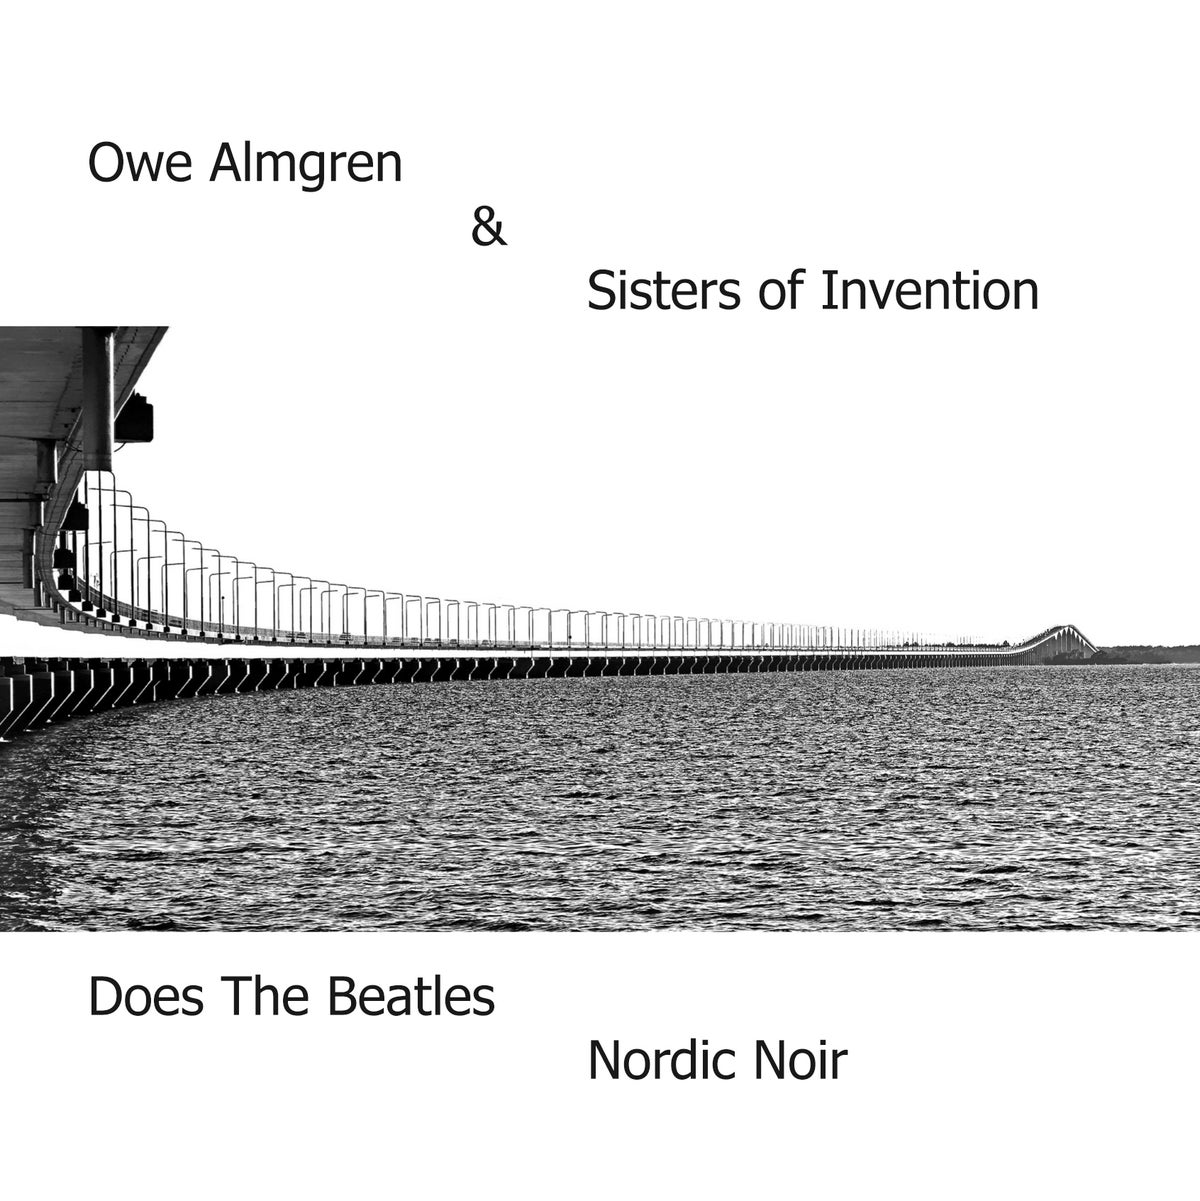 Image of Owe Almgren & Sisters of Invention Does The Beatles Nordic Noir